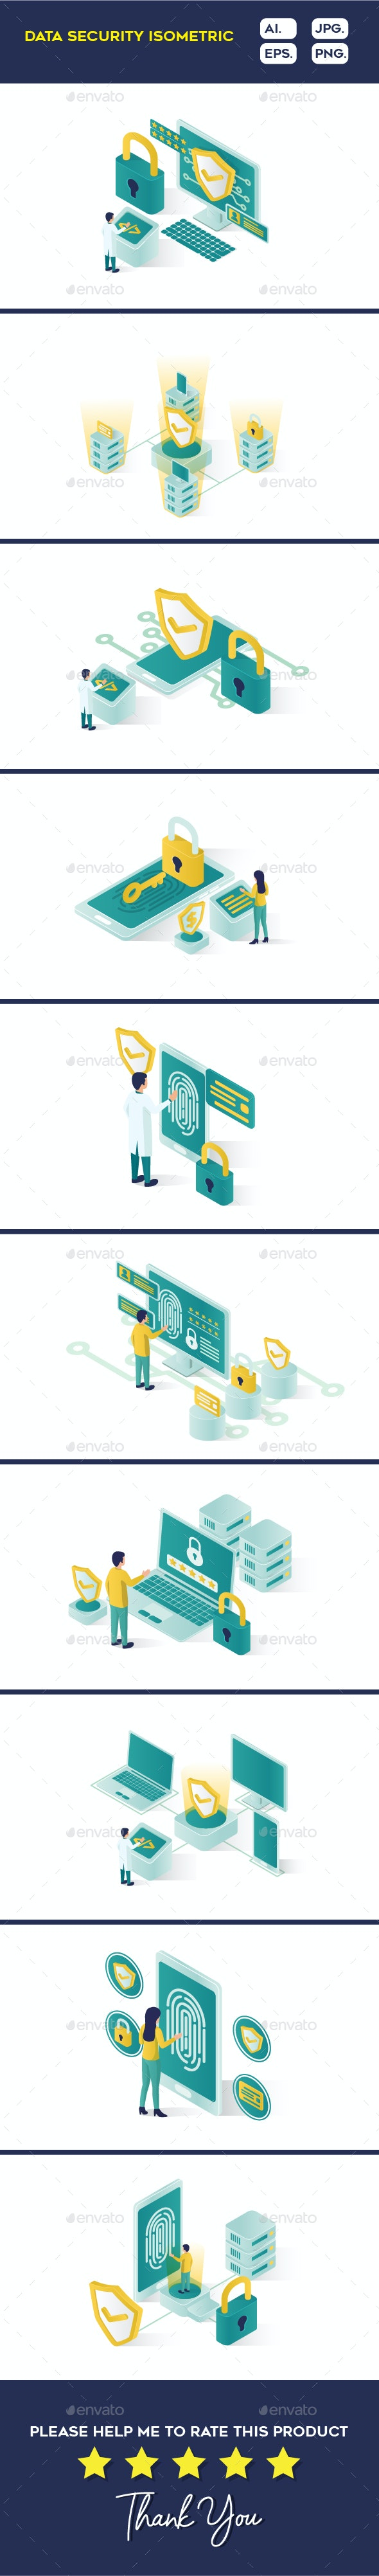 Isometric Data Security Illustration - Computers Technology